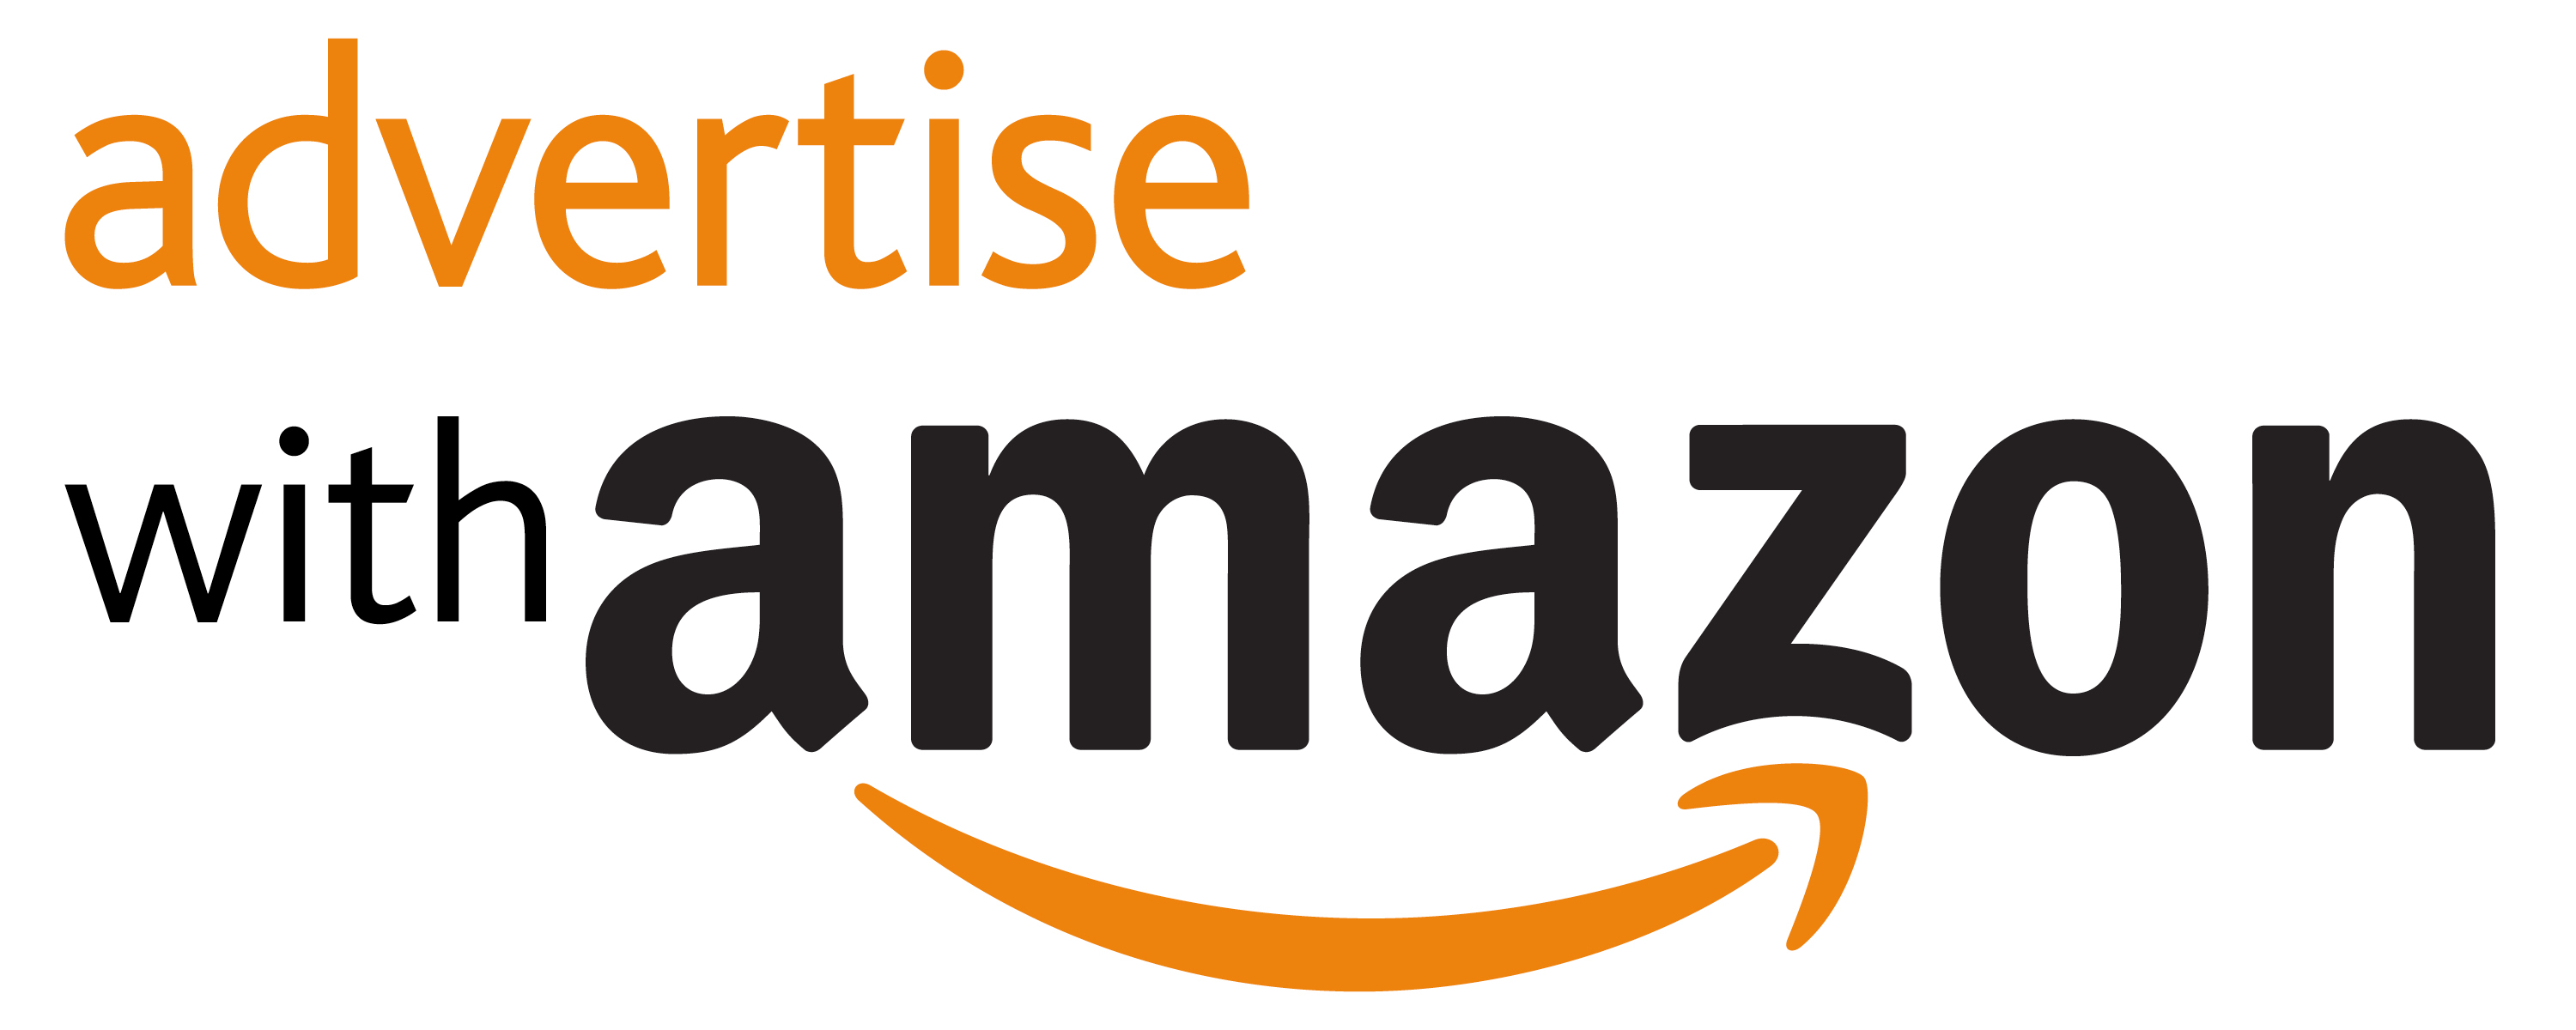 How to Advertise Products on Amazon